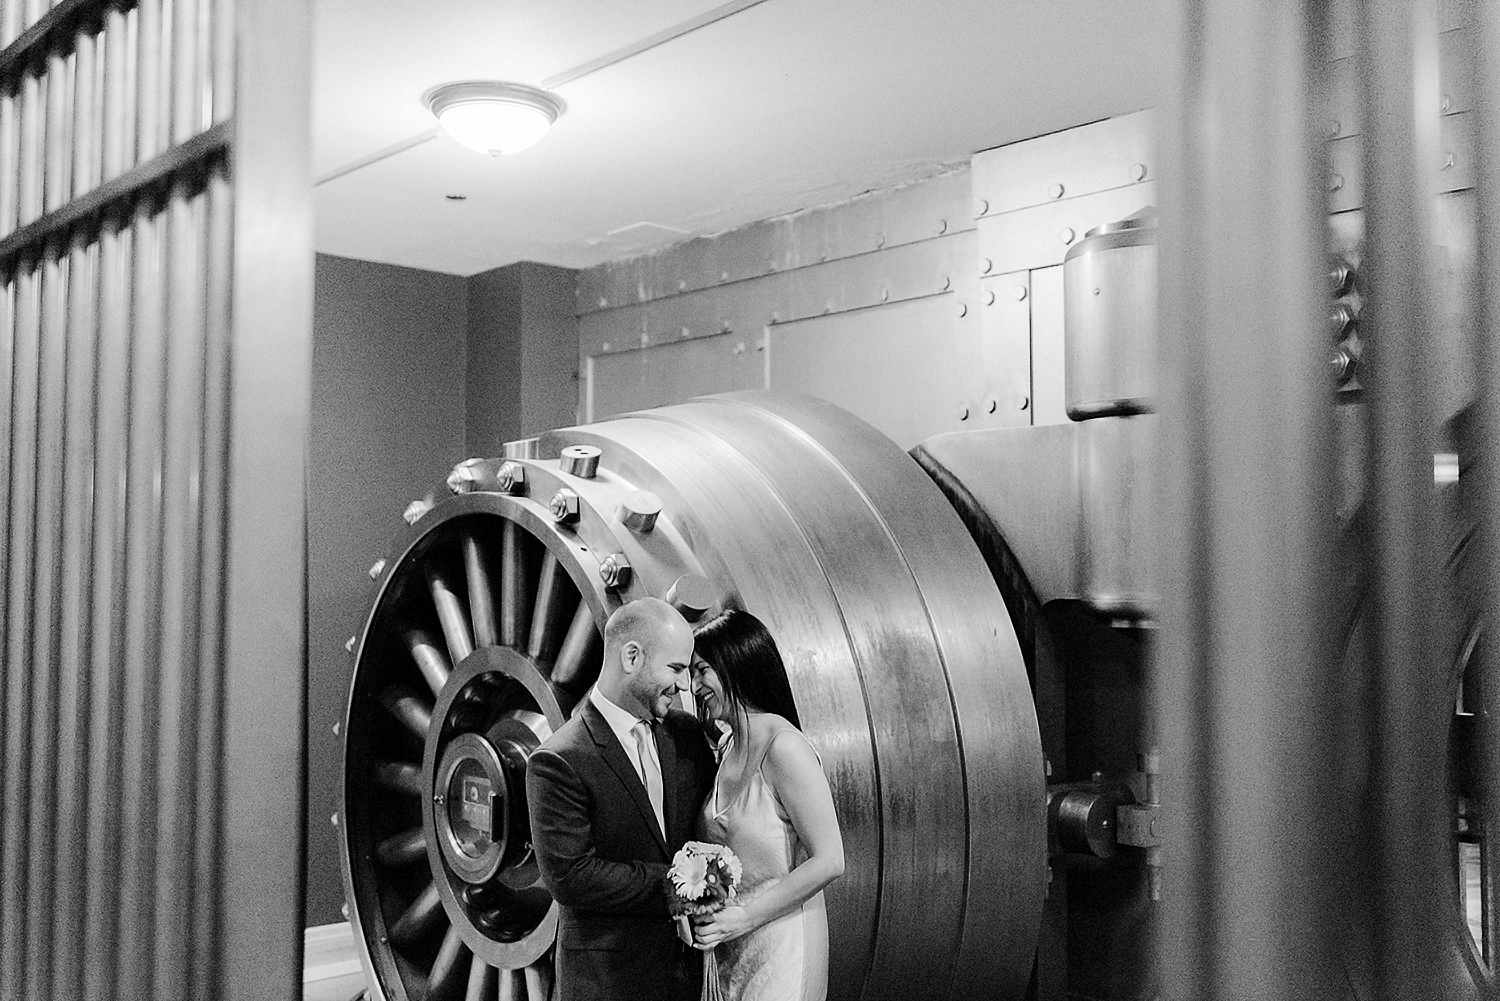 5-BEst-Wedding-Photographers-Toronto-One-King-West-Intimate-Wedding-Elopement-BW-Analog-Film-Portrait-candid-bank-vault_-Portraits-Editorial-candid-portrait.jpg